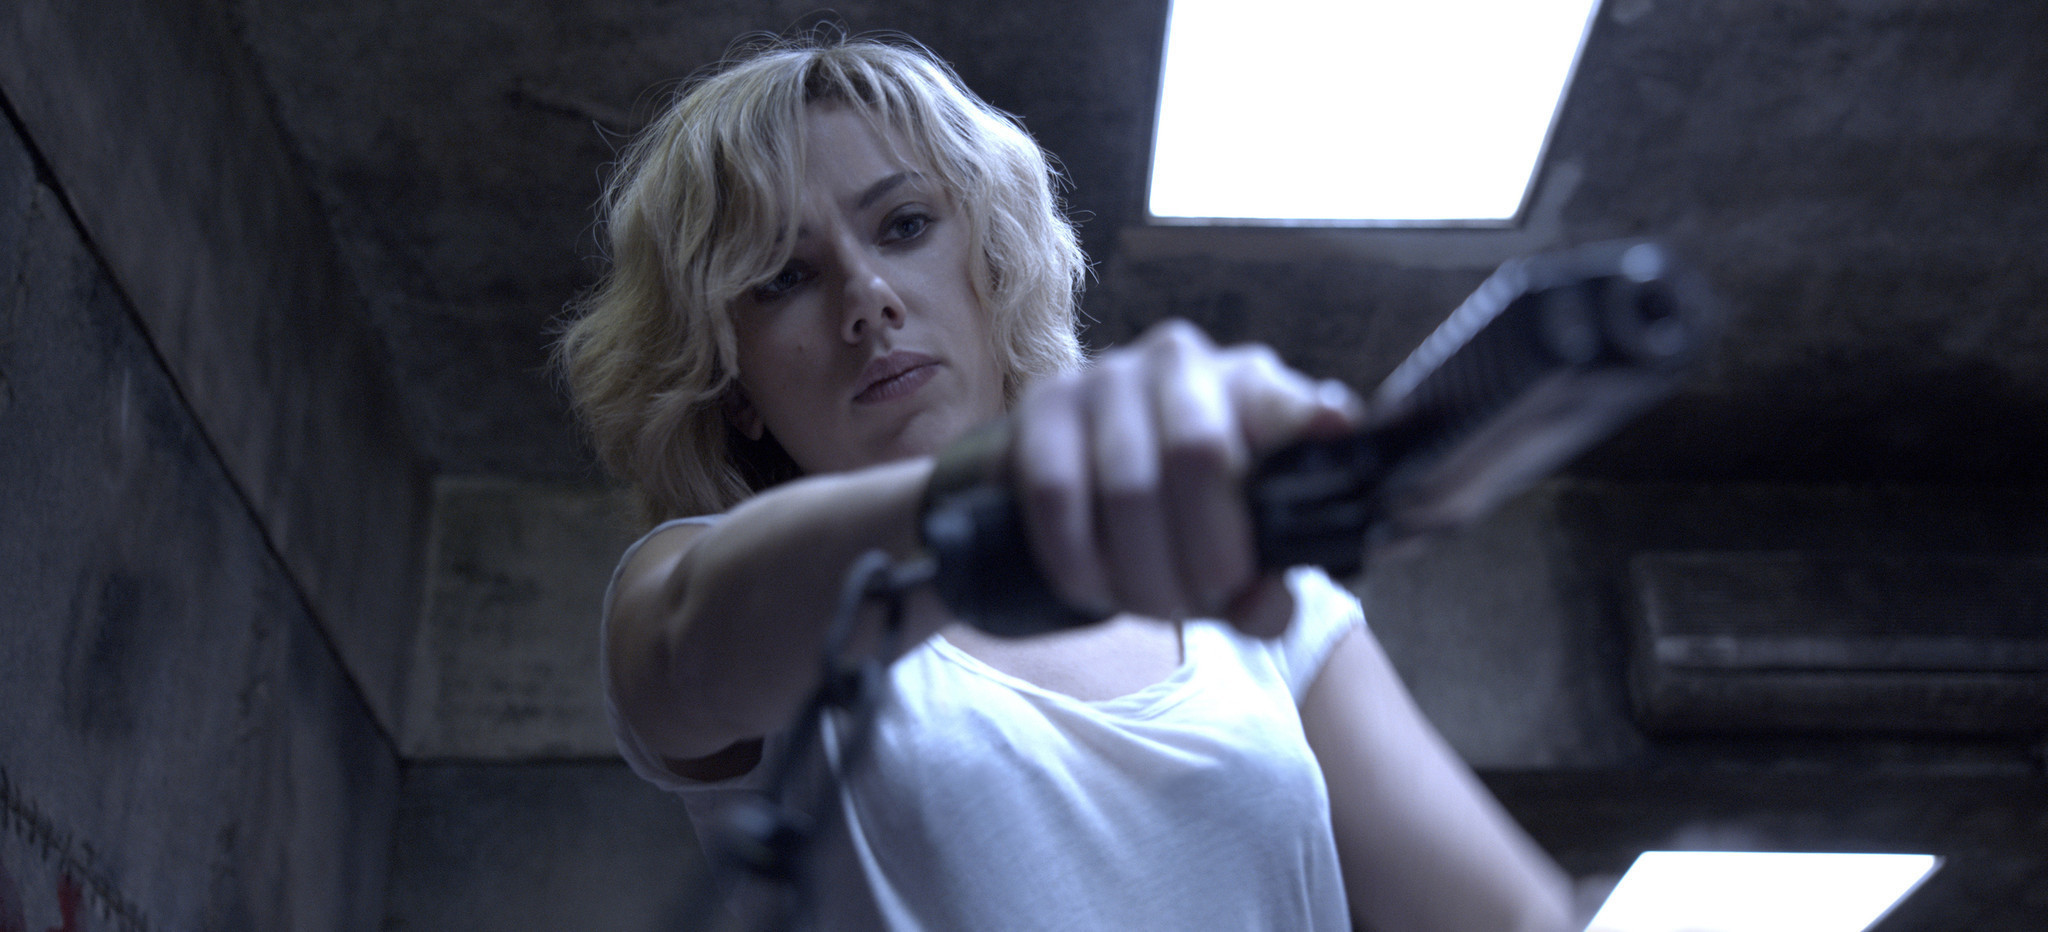 'Lucy' has more firepower than brain power, reviews say